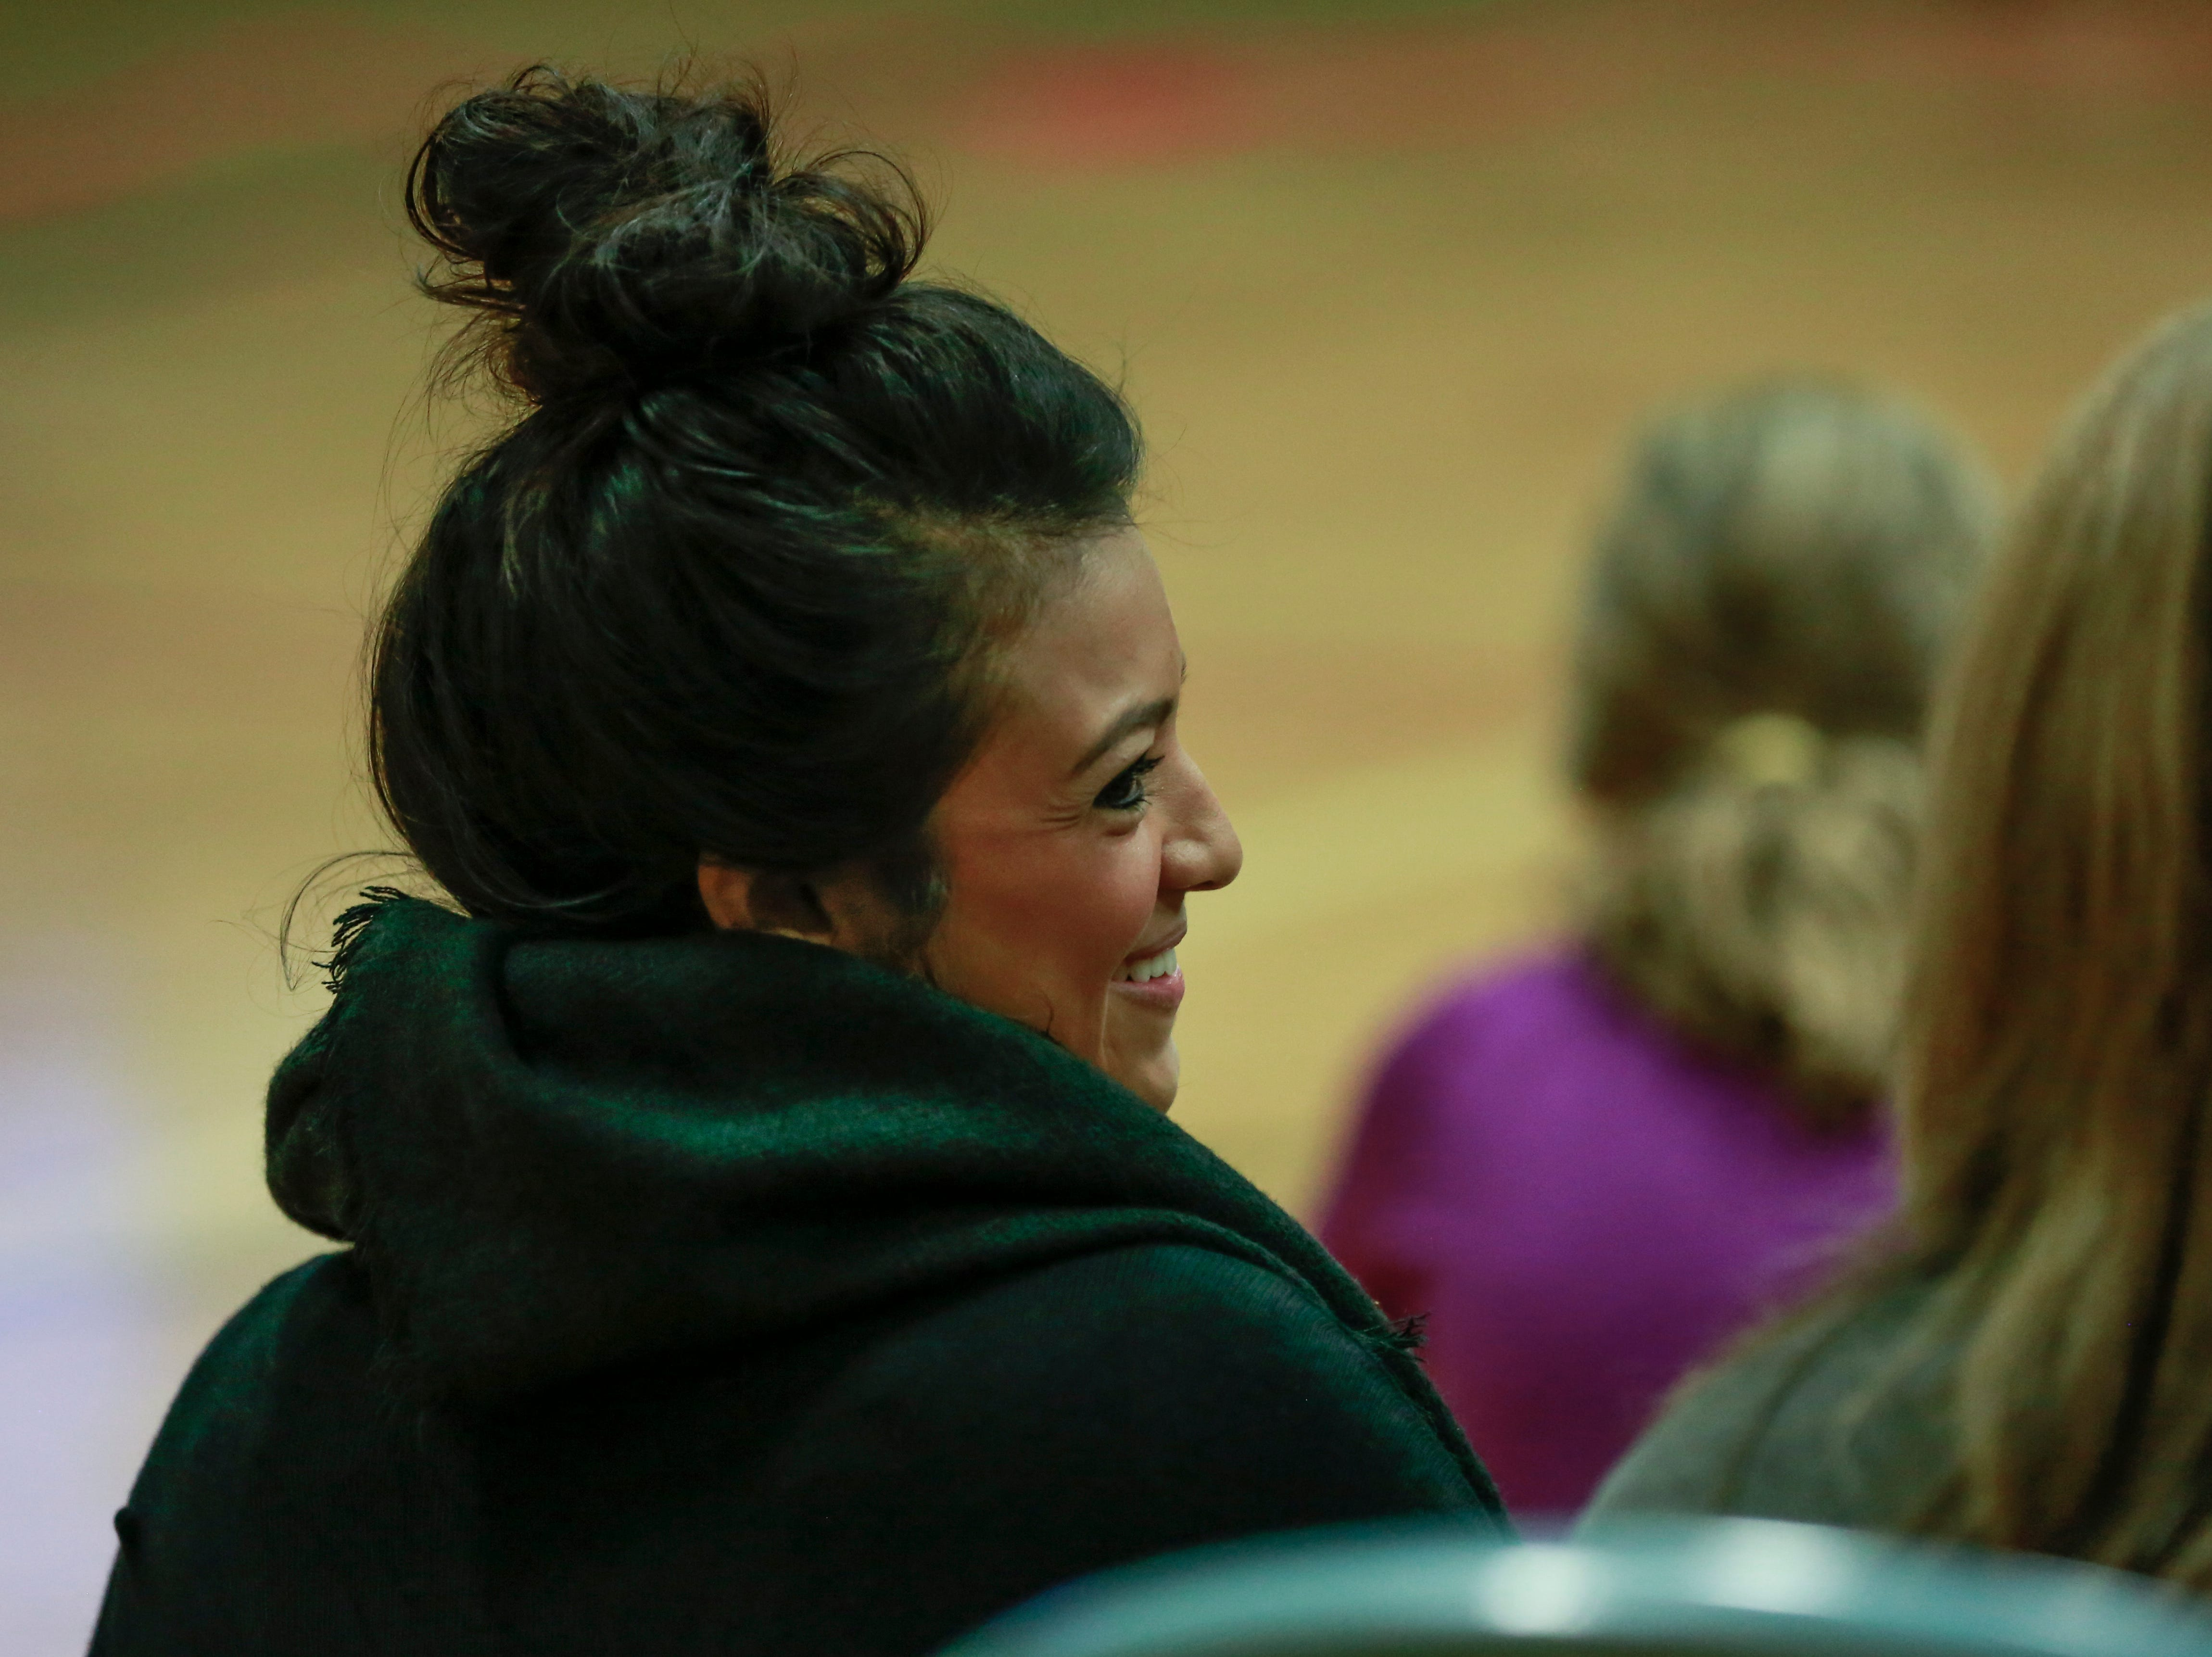 A teacher smiles along with students Monday, Oct. 15, 2018, during the Anti-Bullying Relentless Tour to Visit Wisconsin at Weston Elementary School in Weston, Wis. T'xer Zhon Kha/USA TODAY NETWORK-Wisconsin